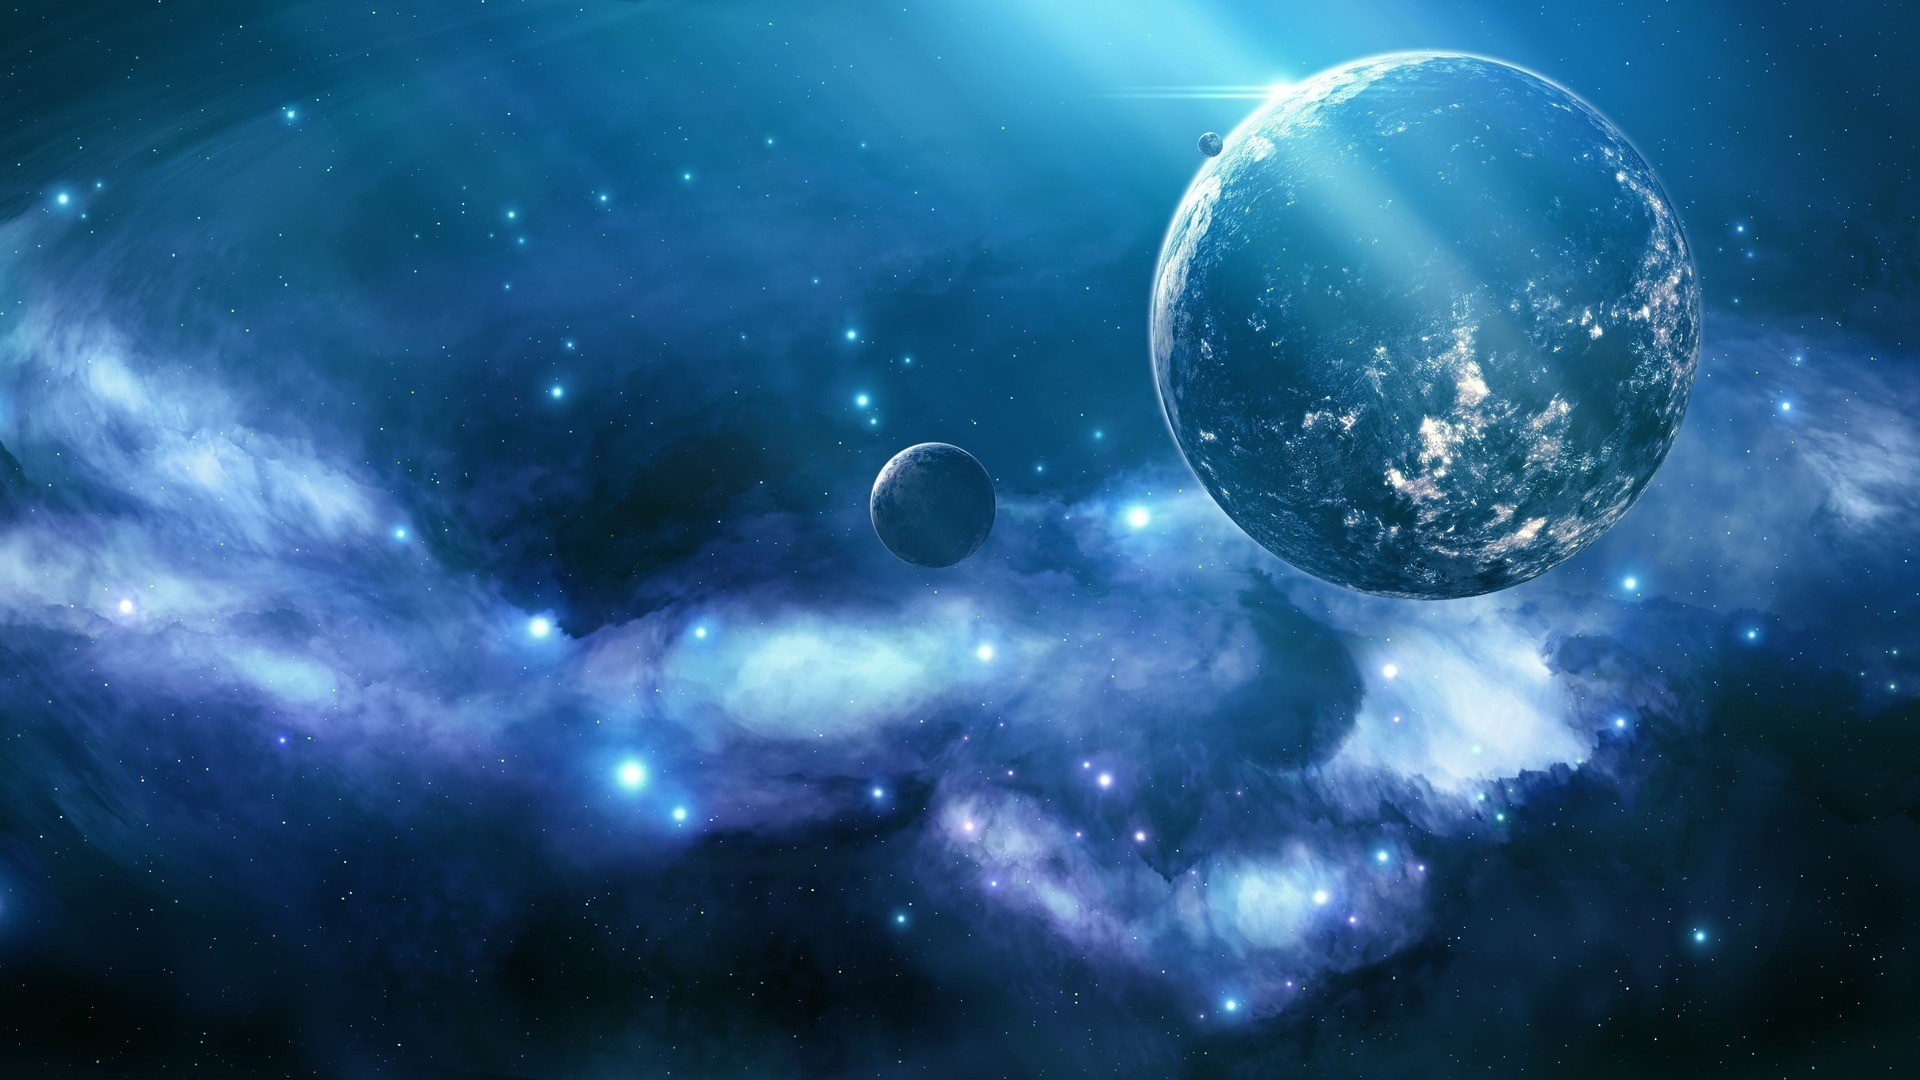 89+ Abstract Space Wallpapers HD WallpaperYou